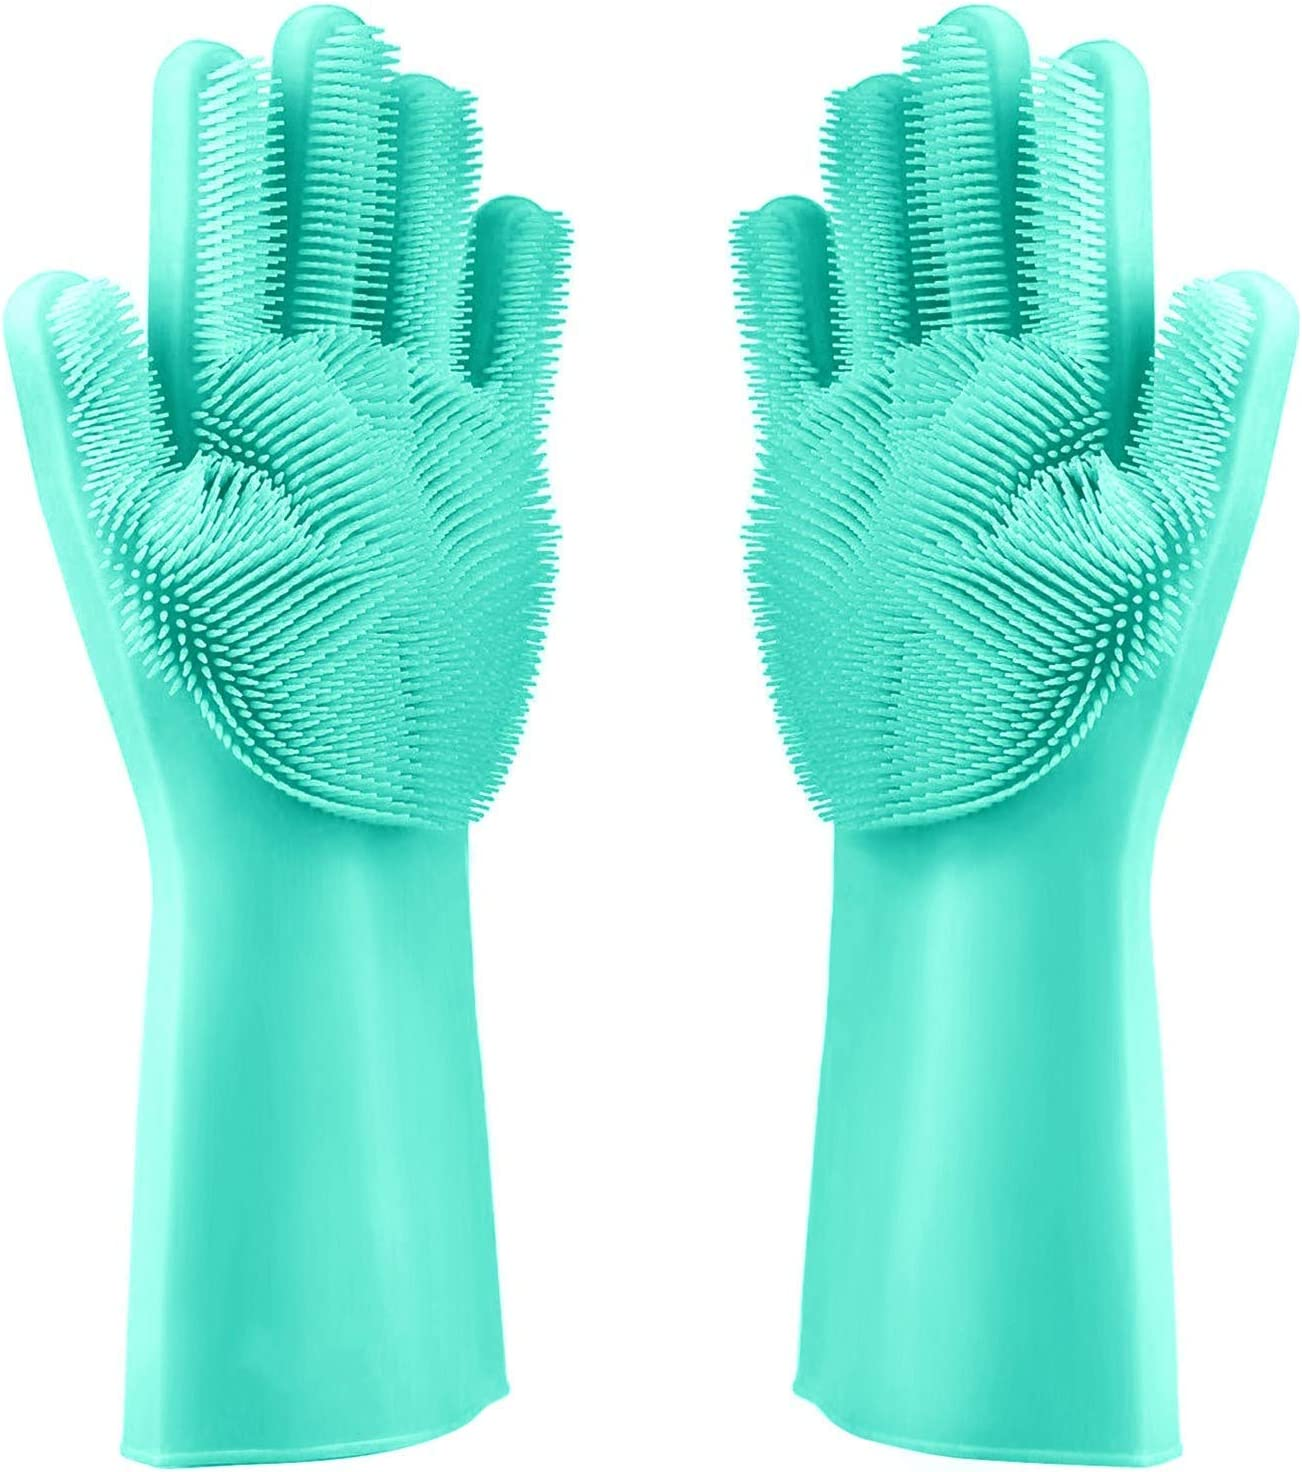 Magic Reusable Dishwashing Cleaning Sponge Gloves Silicone Brush Scrubber Gloves Heat Resistant for Dishwashing Bathroom Kitchen Cleaning Pet Hair Care Car & More Washing (Green)